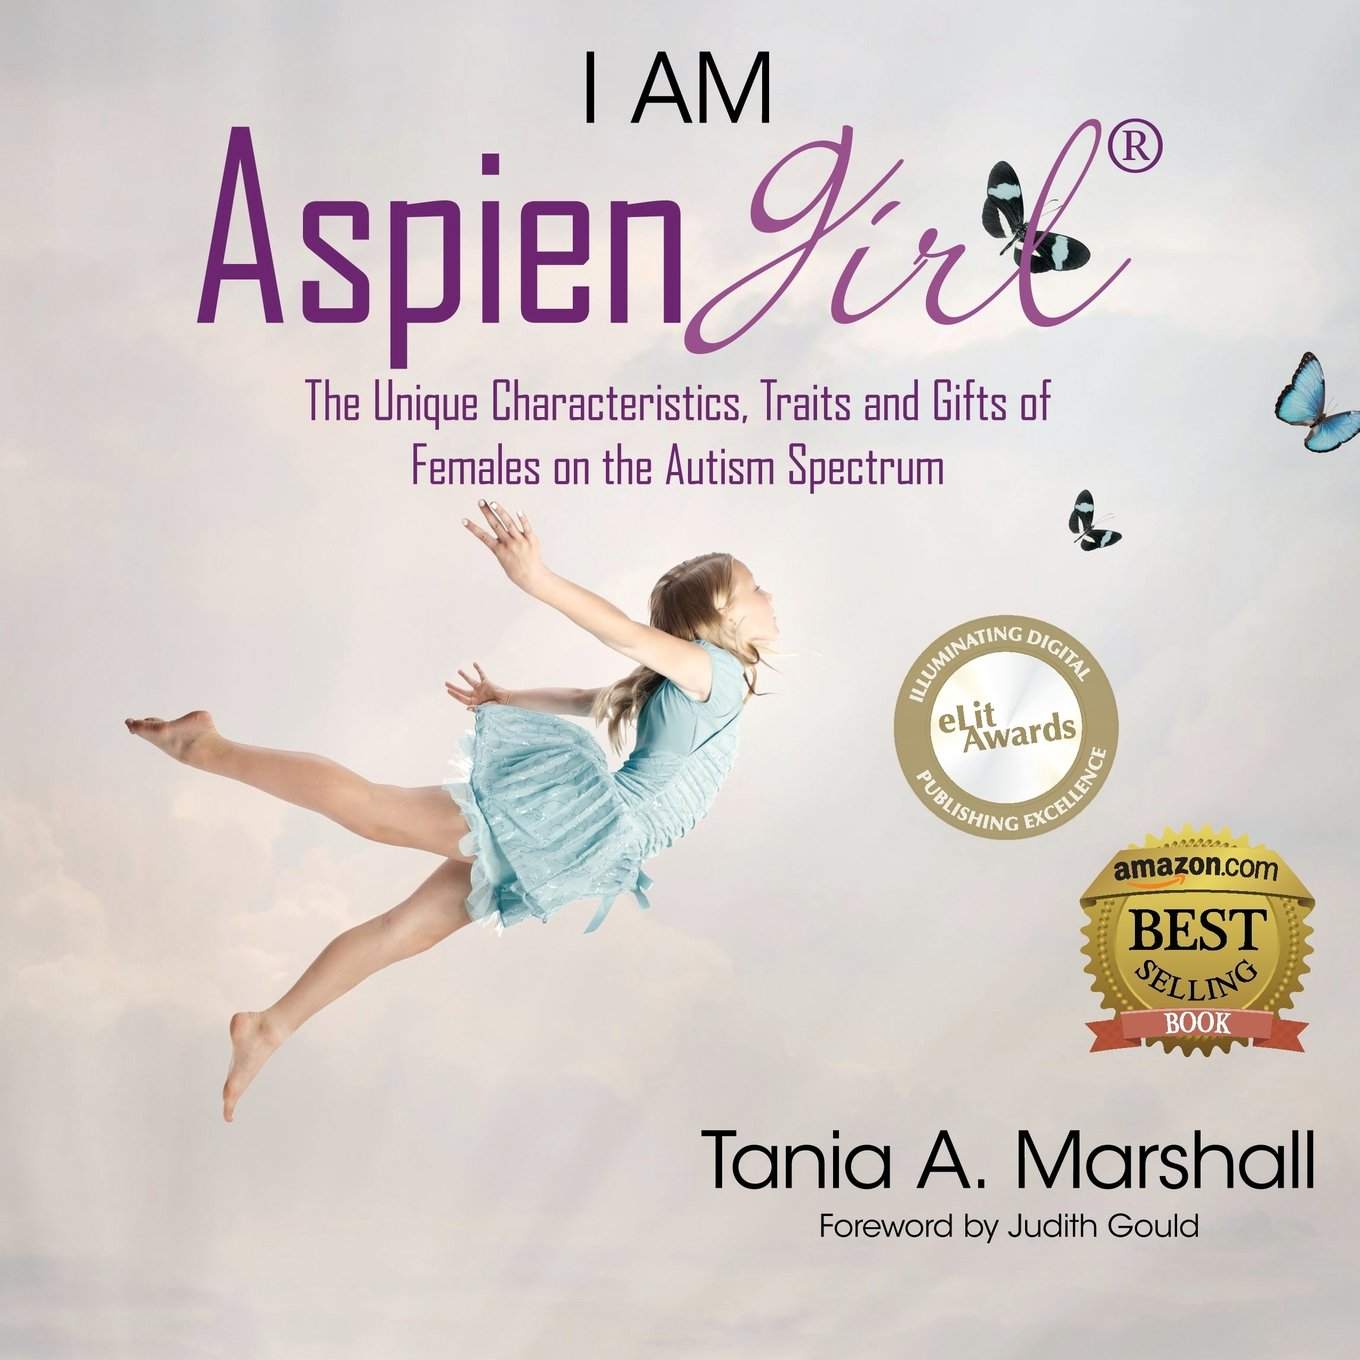 I Am Aspiengirl: The Unique Characteristics, Traits and Gifts of Females on the Autism Spectrum ePub fb2 ebook